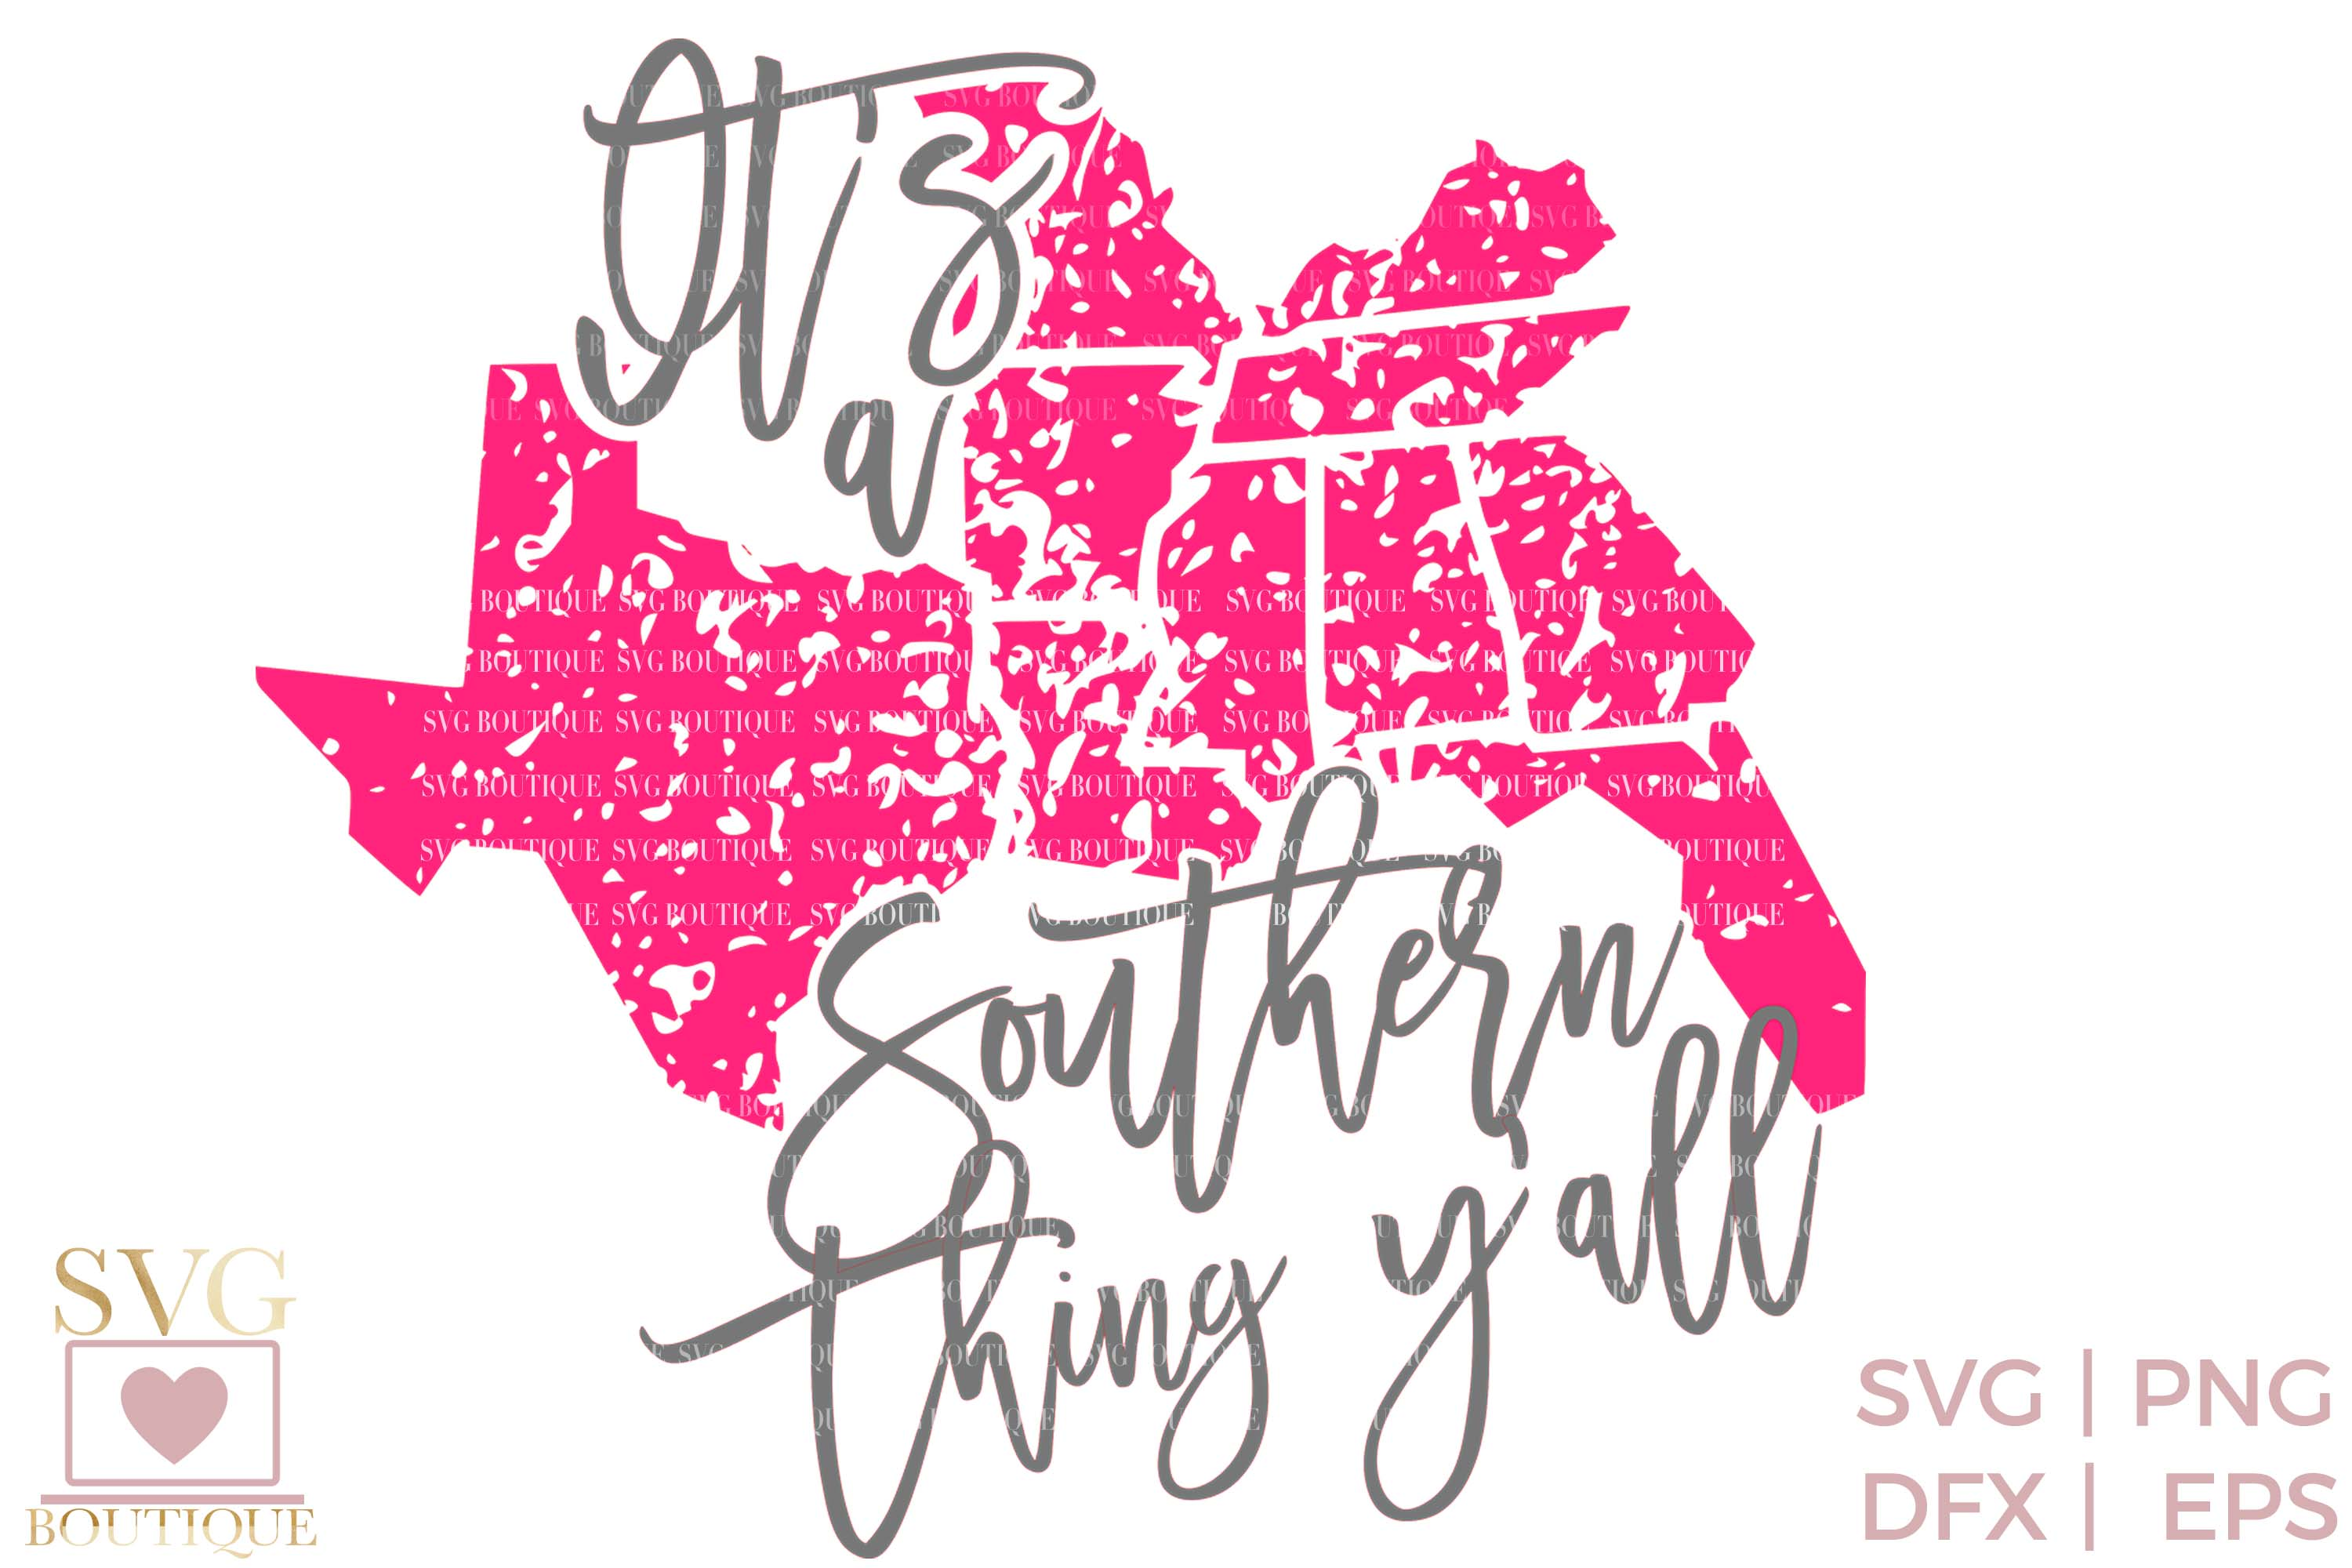 Southern Thing SVG PNG DFX - Sassy Country Crafting File example image 2